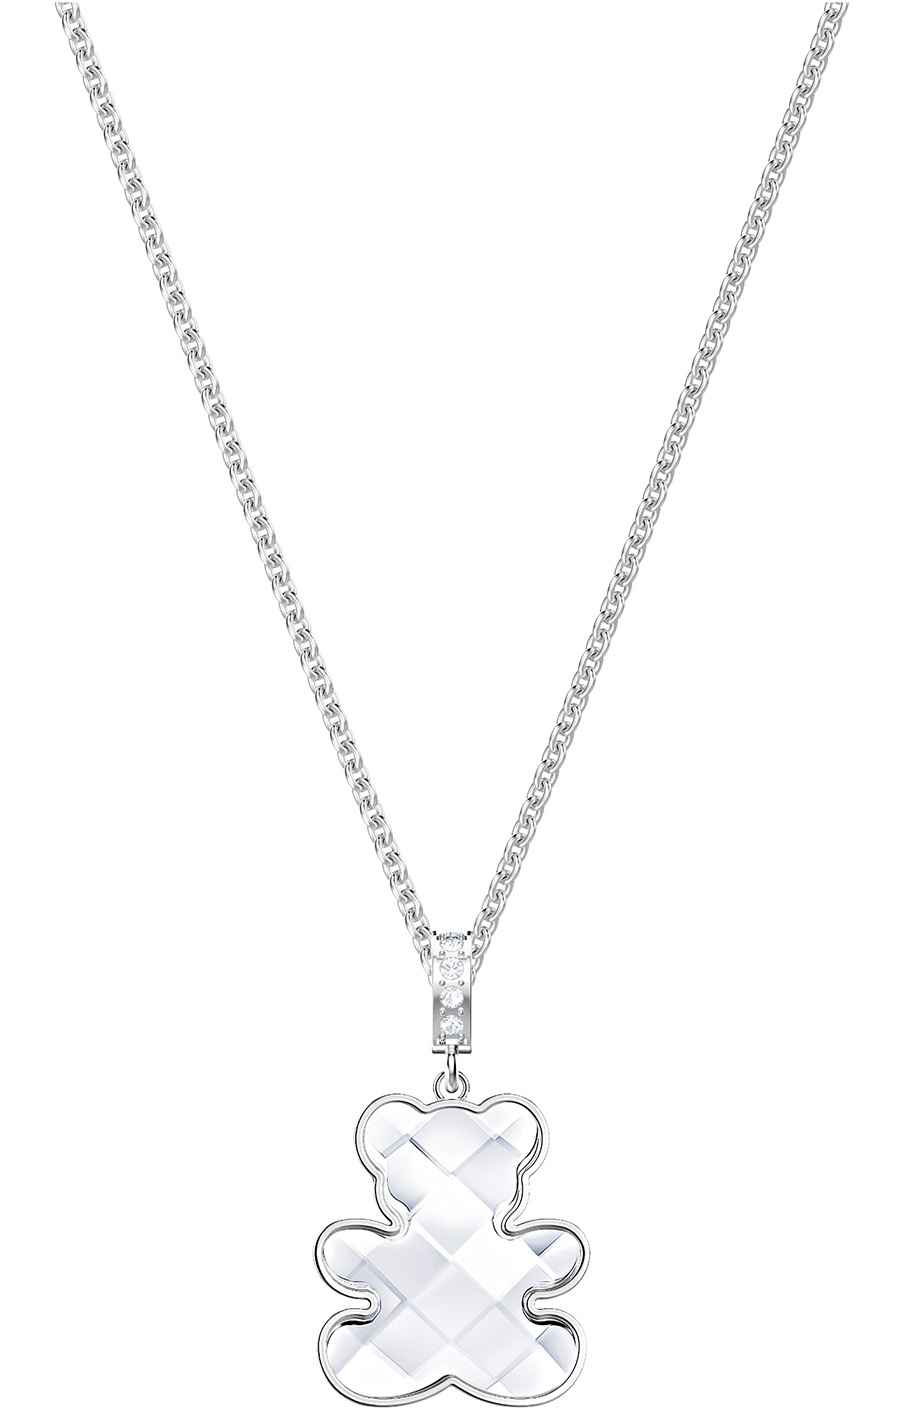 Swarovski Teddy Pendant - White - Rhodium Plating - 5410280